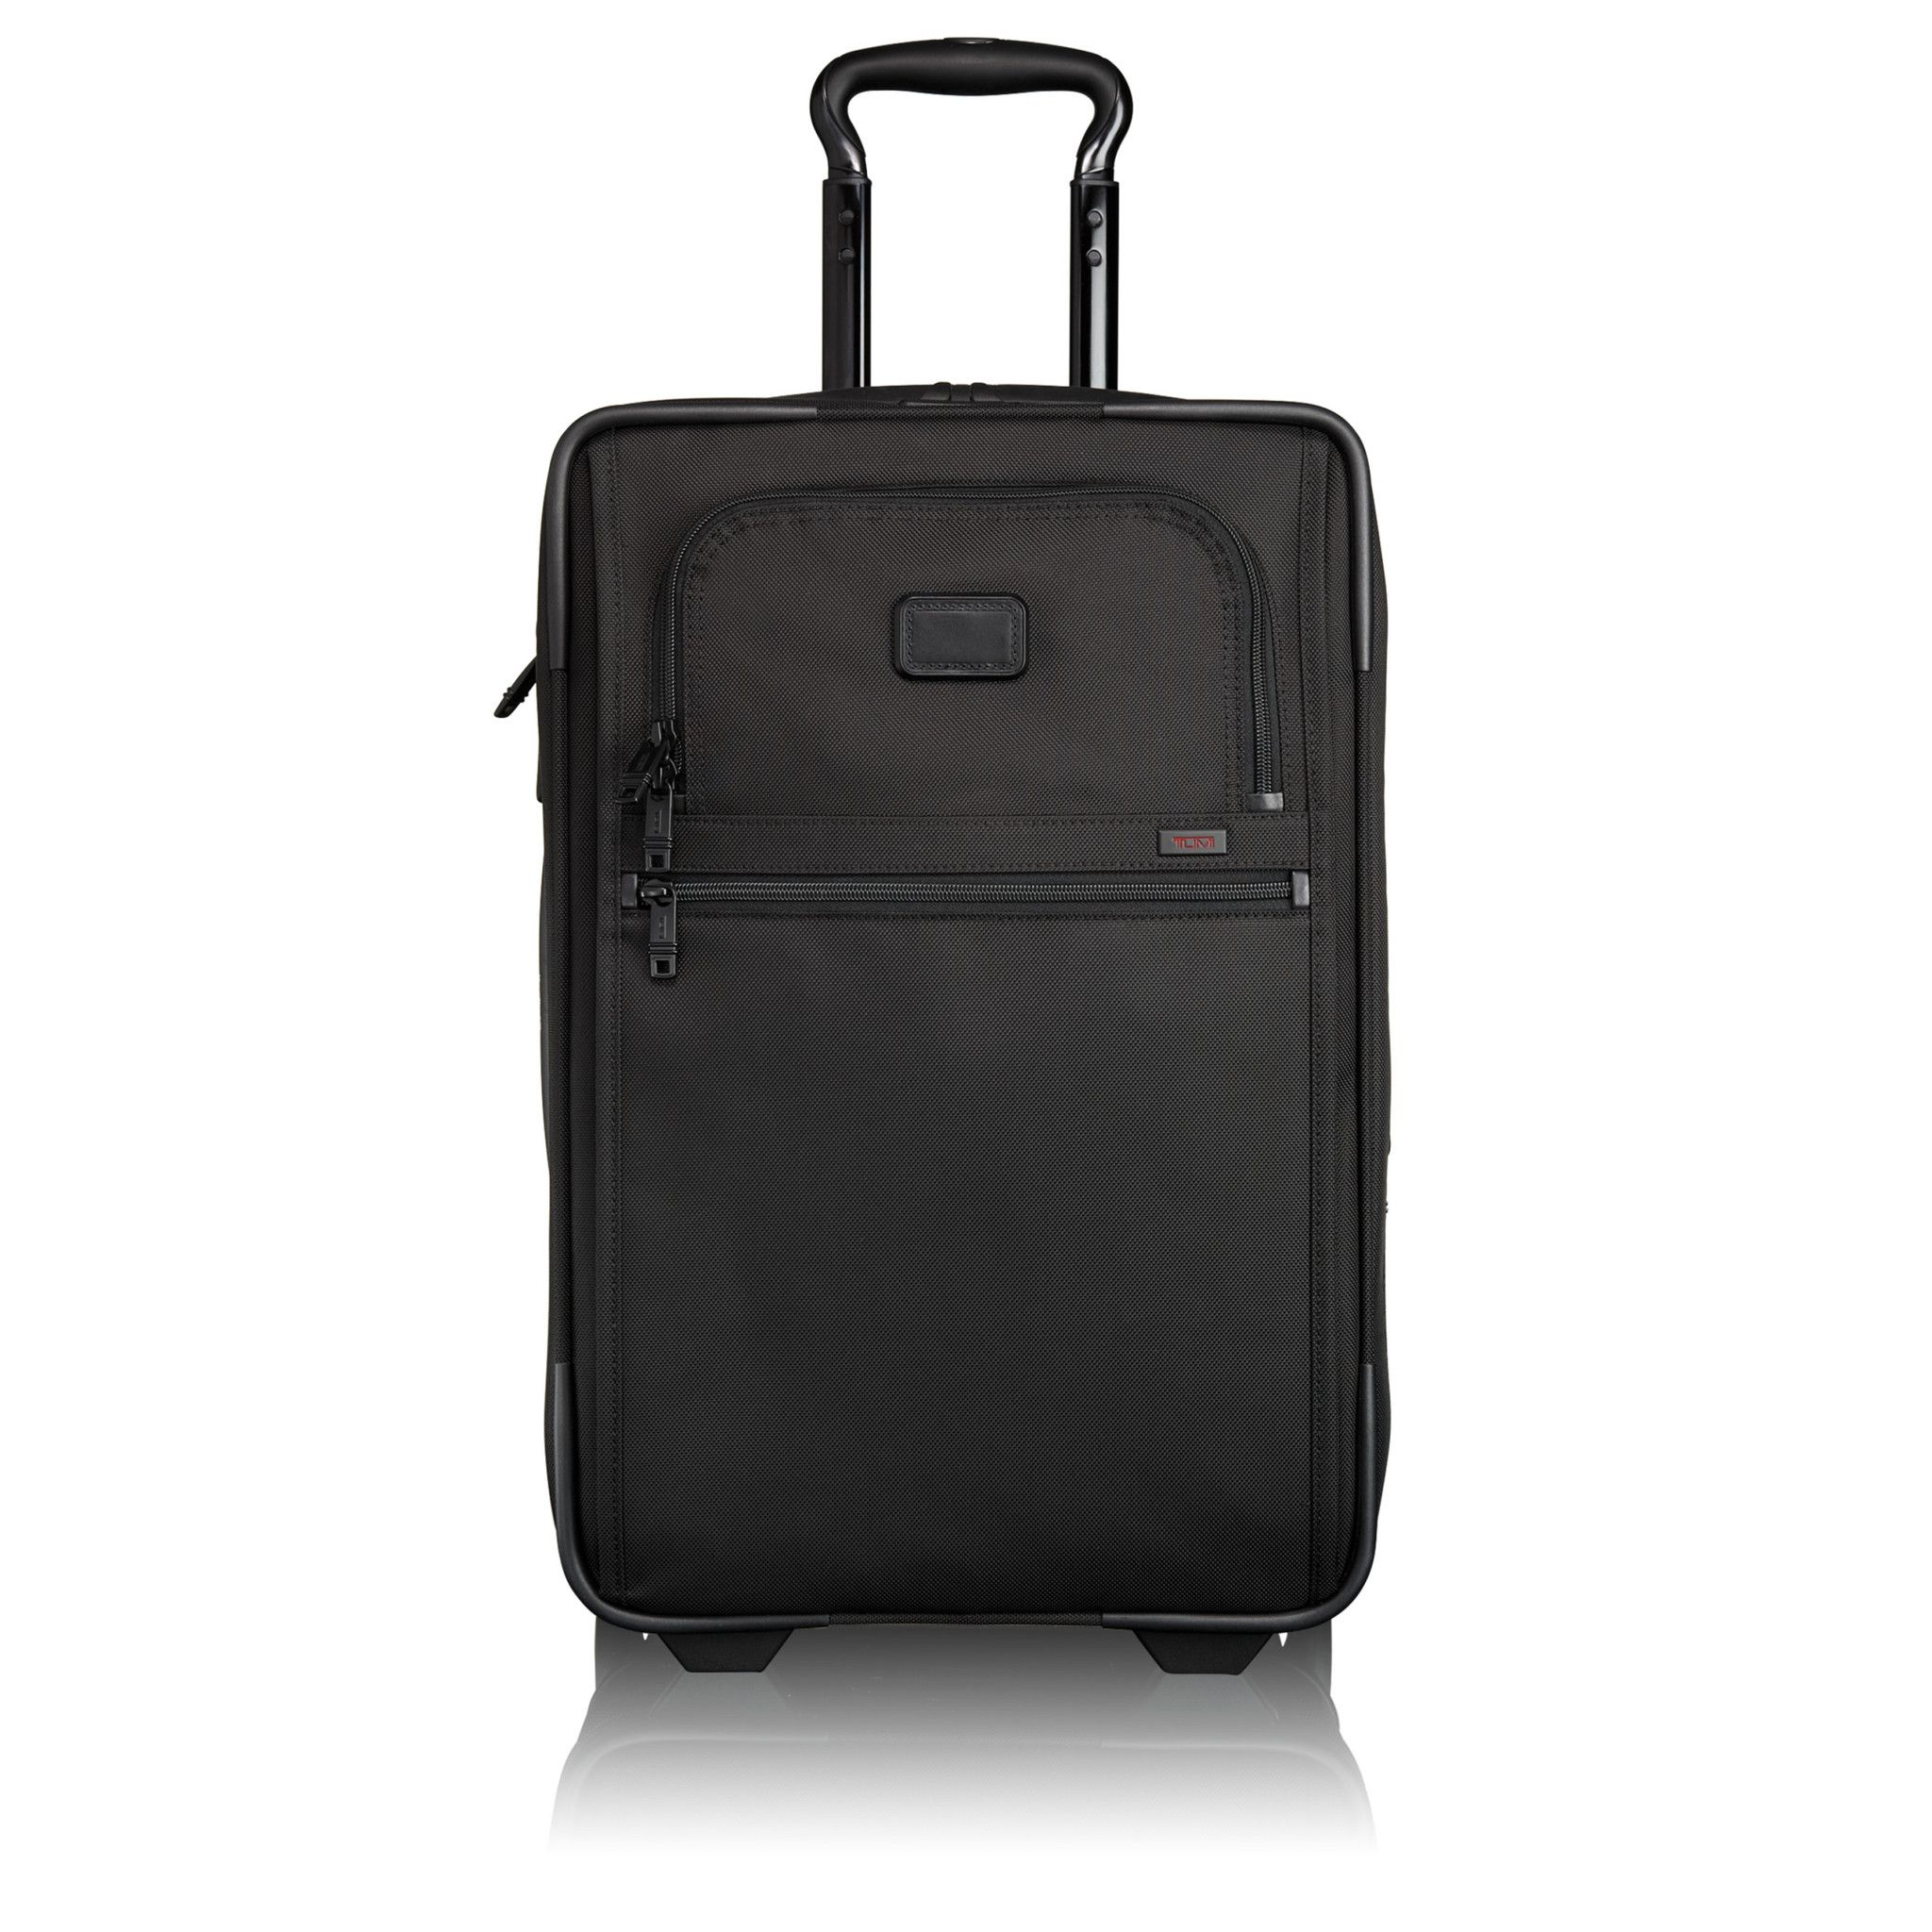 dbfd8574c2  715 - Tumi Alpha 2 International Expandable 2 Wheeled Carry On - Black  (too big